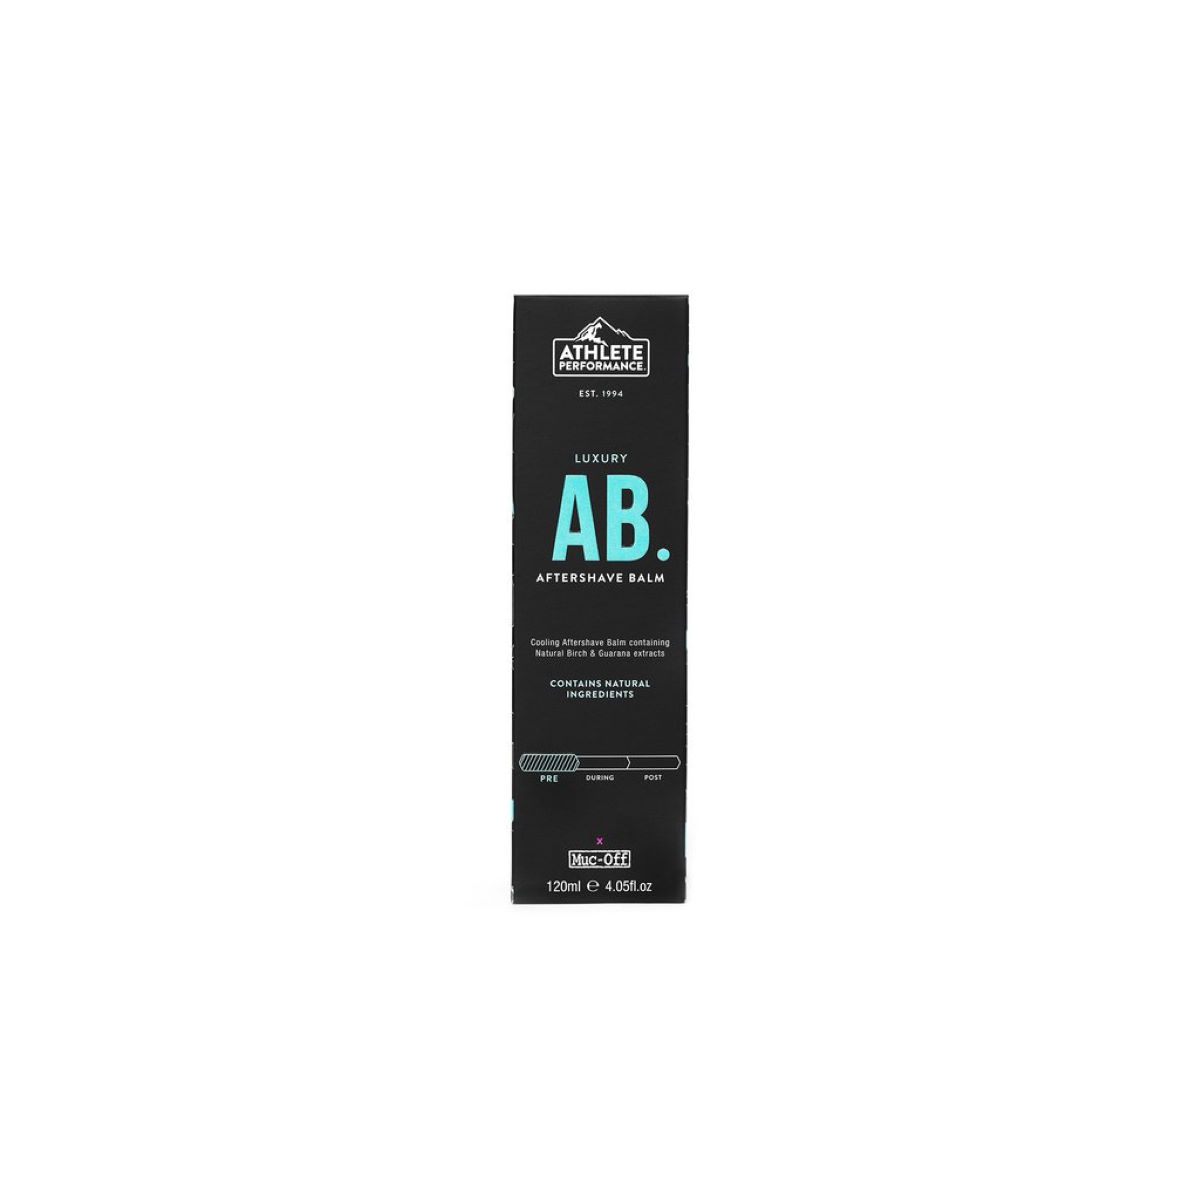 Bálsamo aftershave Muc-Off Athlete Performance (120 ml) - Cremas musculares